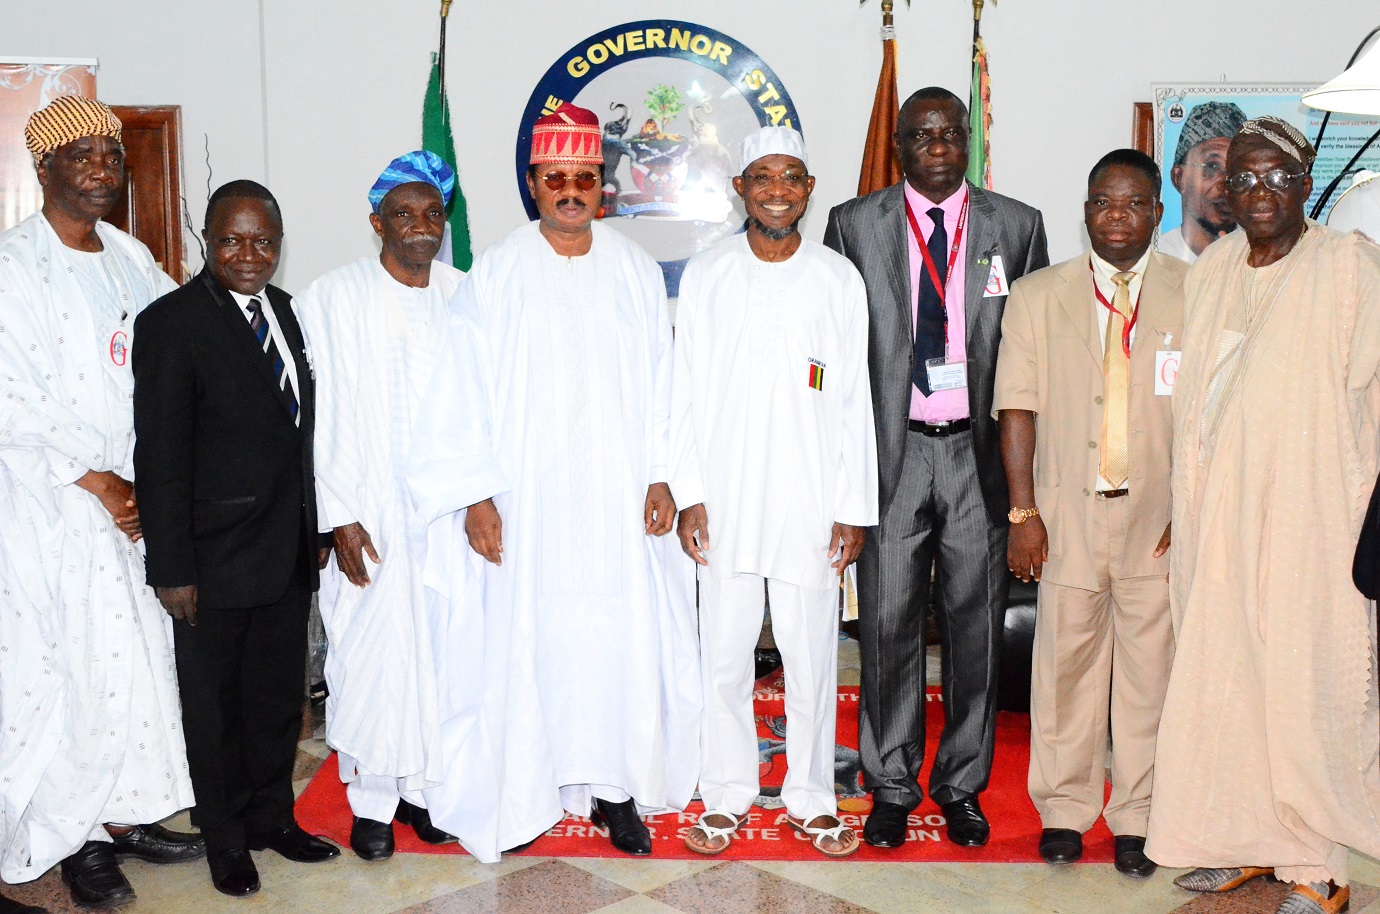 Governor State of Osun, Ogbeni Rauf Aregbesola (4th right); Pro-Chancellor/Chairman of Council, Ladoke Akintola University of Technology (LAUTECH), Ogbomoso, Professor Wale Omole (4th left); Vice Chancellor, LAUTECH Ogbomoso, Professor Adeniyi Gbadegesin (3rd right); Deputy Vice Chancellor, LAUTECH, Professor Timothy Adebayo (2nd right); Members of Council, LAUTECH, Professor Richard Olaniyan (left); Professor Olasupo Ladipo (3rd left) and others, during a Congratulatory and Courtesy Visit to the Governor, by Council Members and Management Team of LAUTECH at Government House, Osogbo, State of Osun on Wednesday 27-08-2014